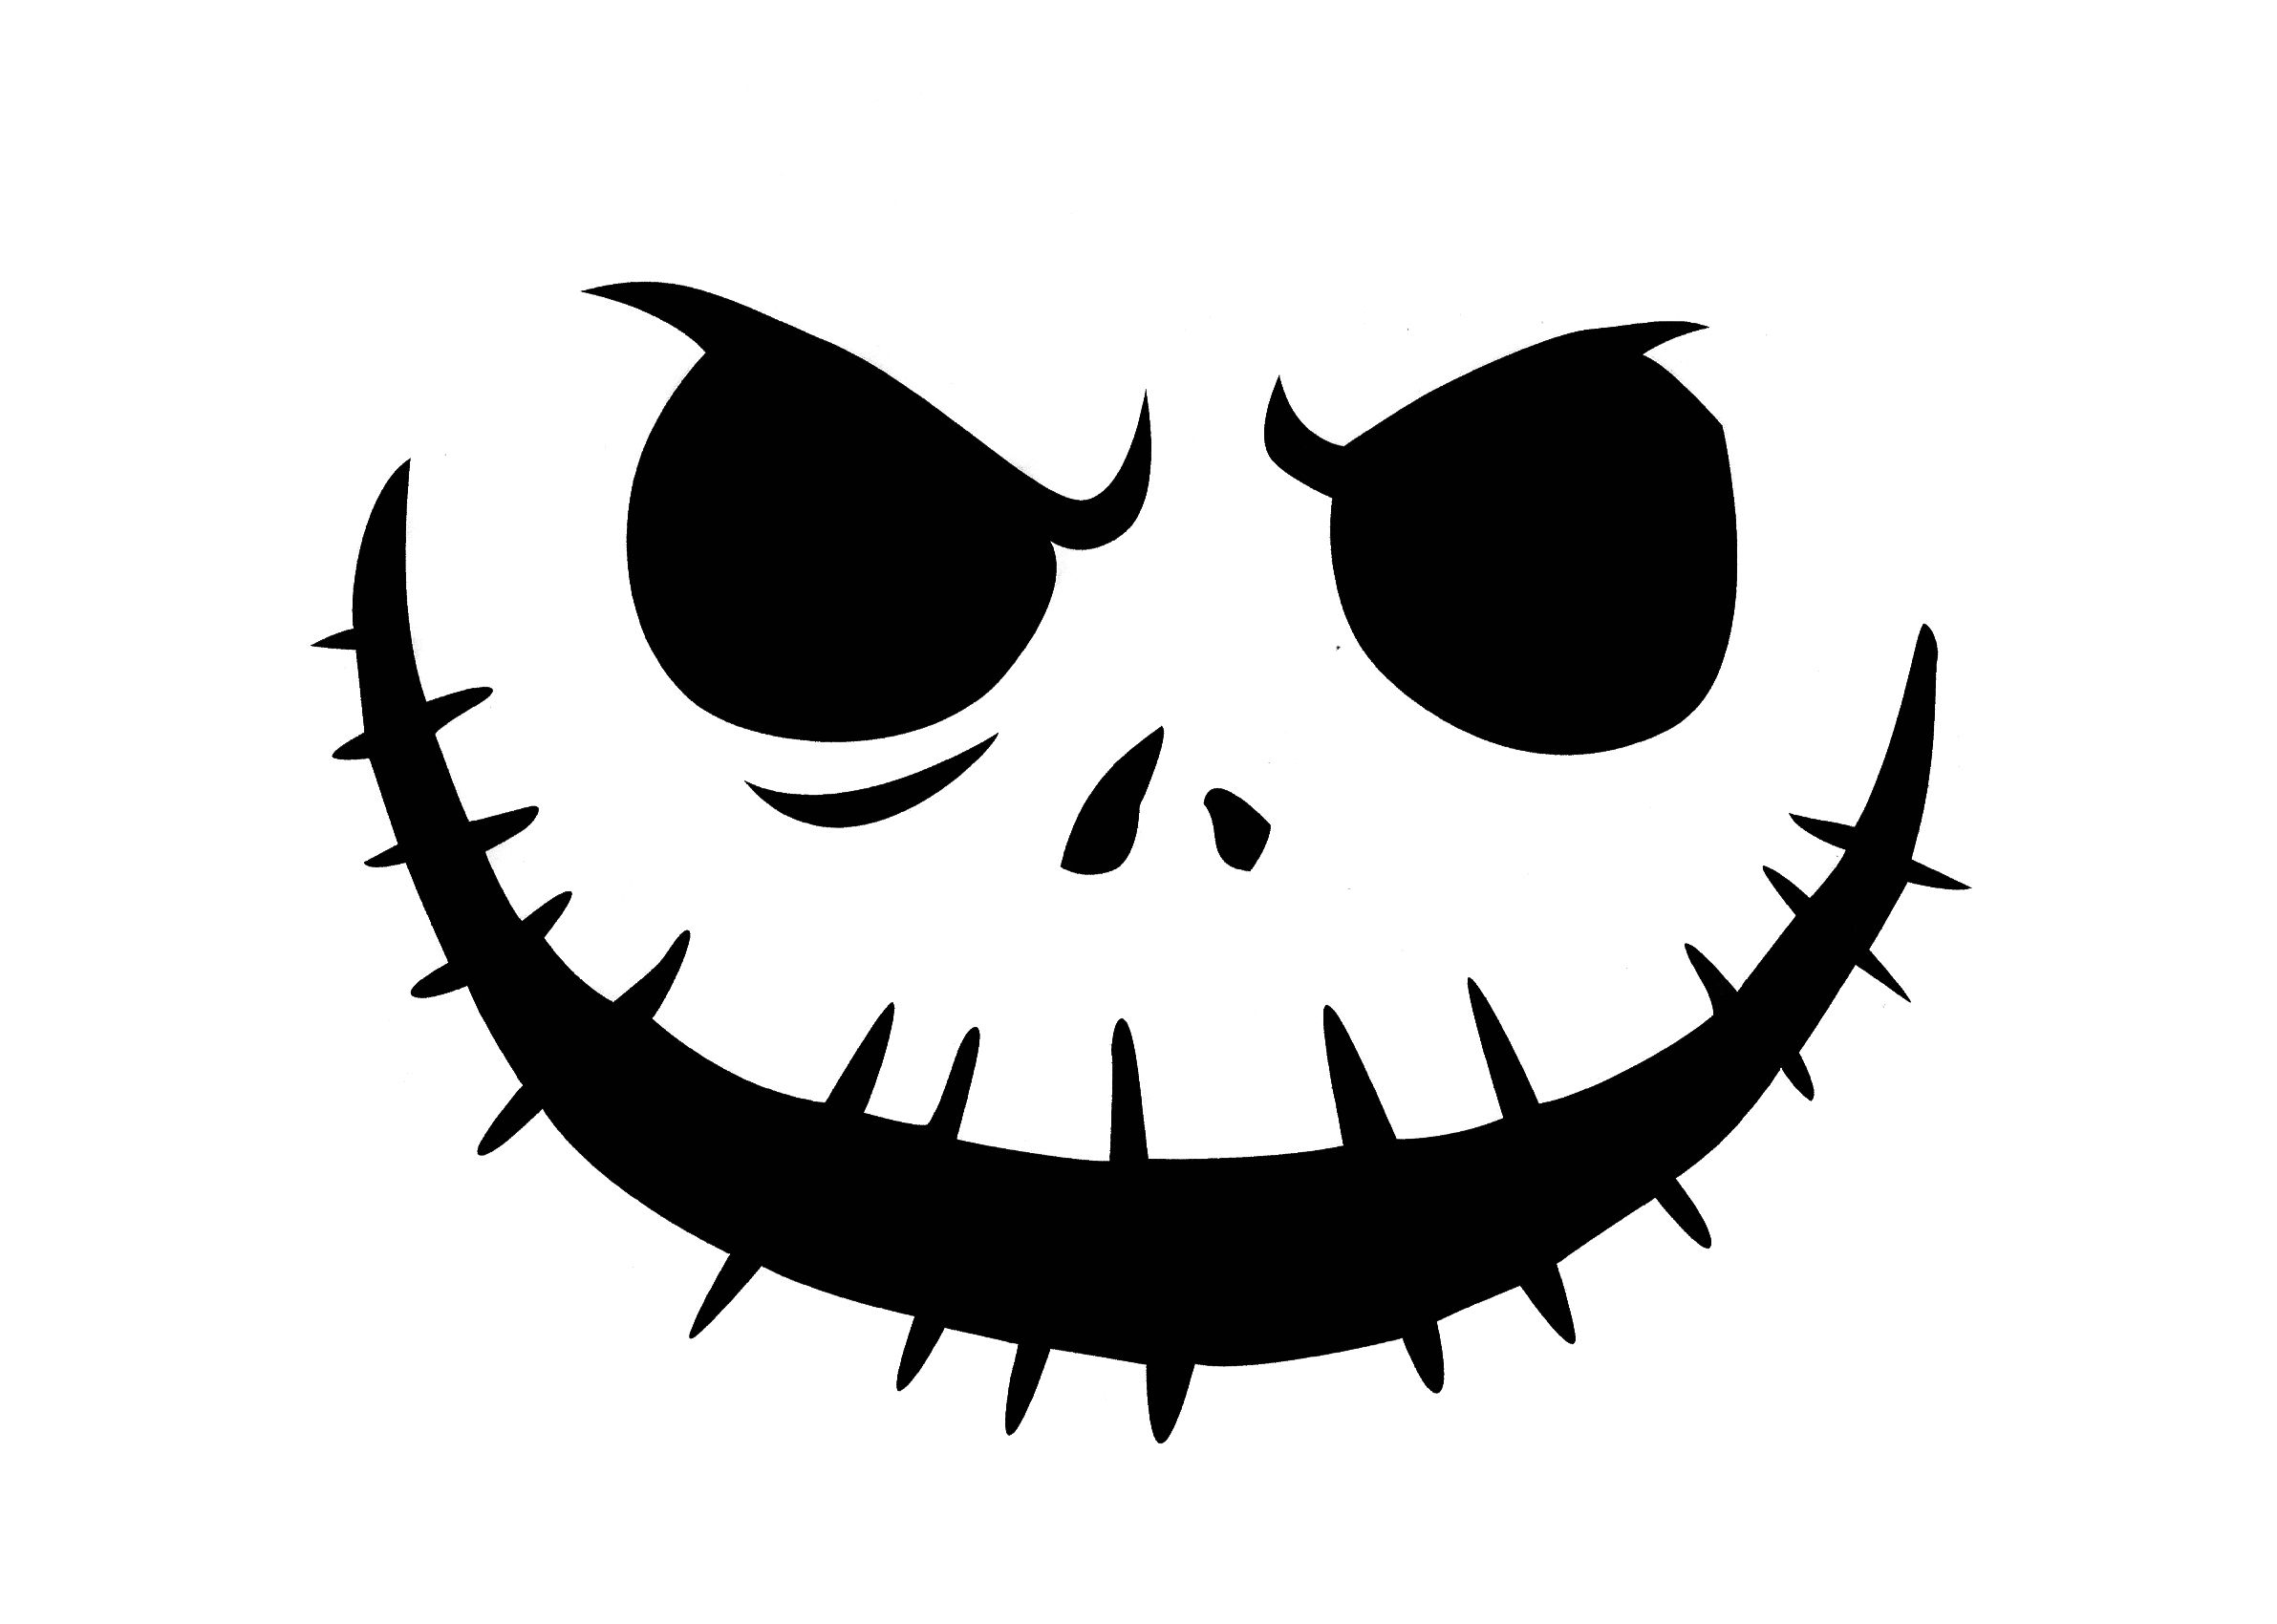 Get scary nerdy with these geeky Jack-o-Lantern stencils